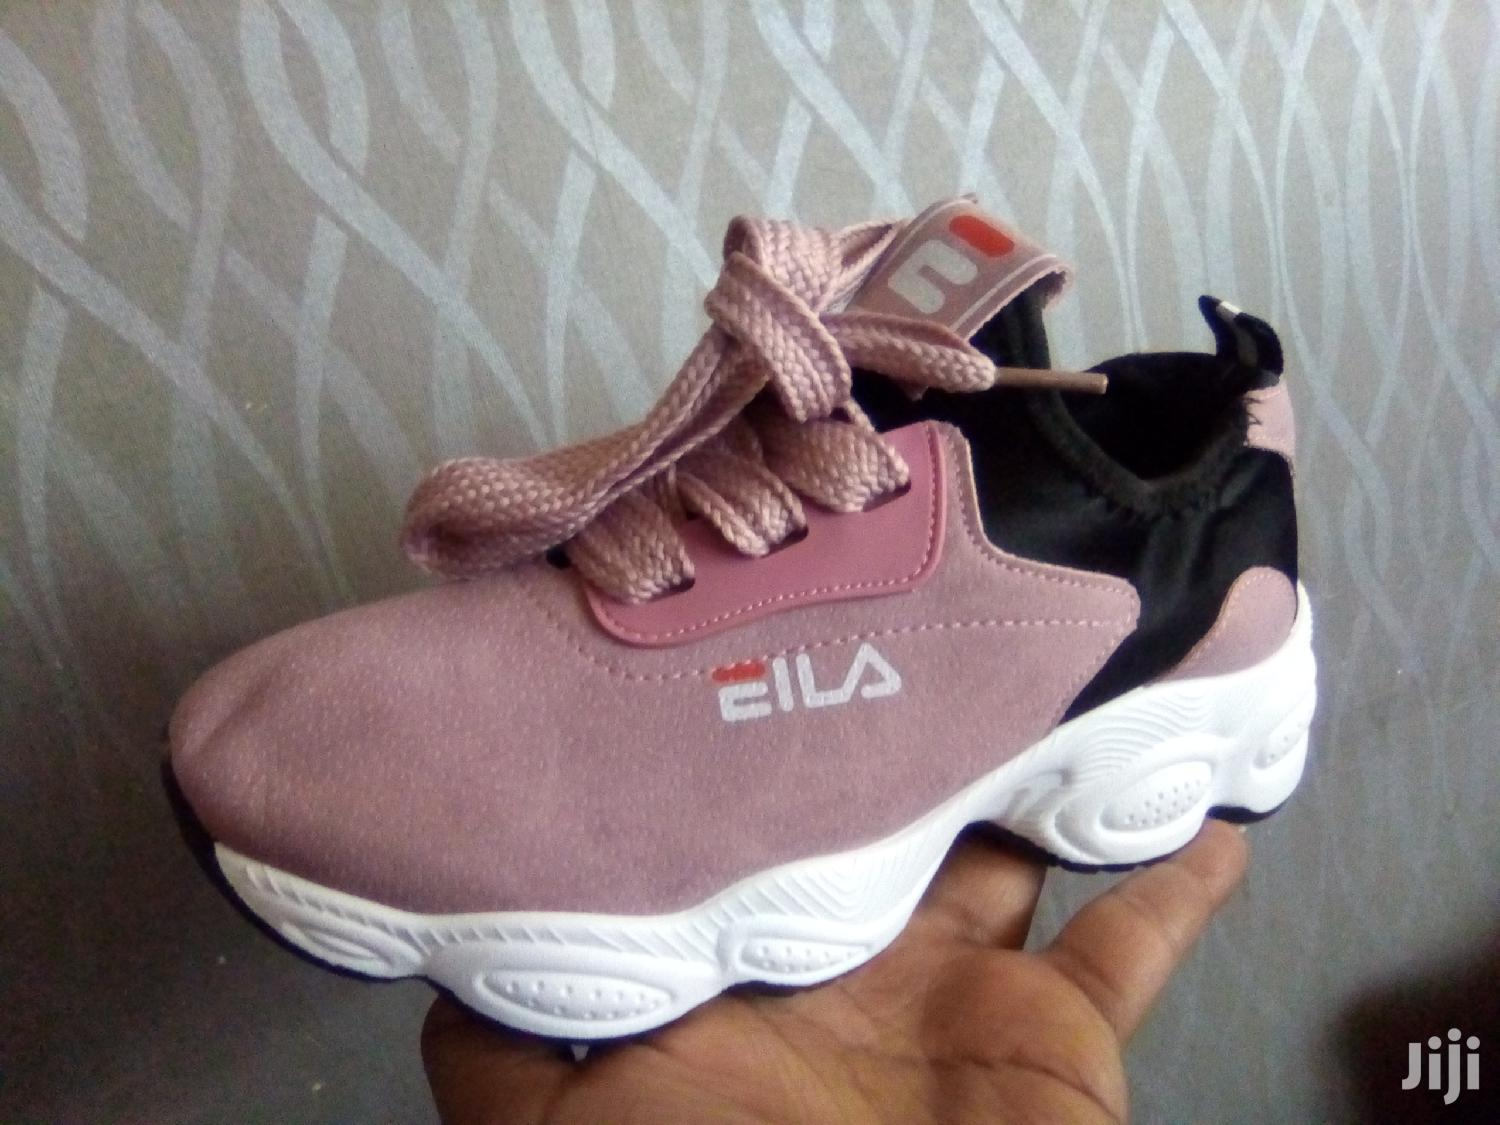 Quality Sneaker Shoes For Girls   Children's Shoes for sale in Bole, Addis Ababa, Ethiopia